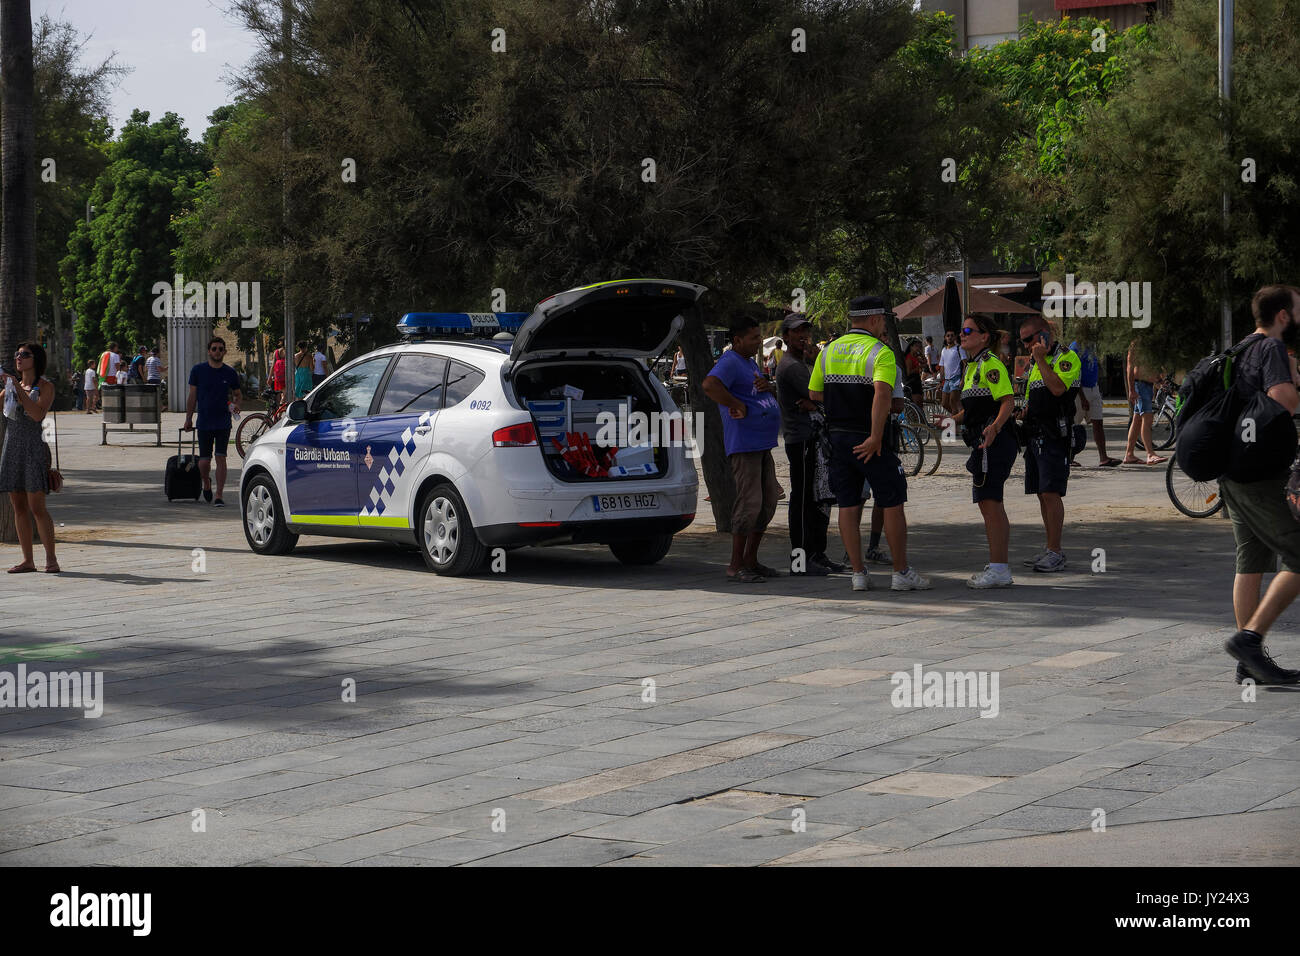 Guardia Urbana policemen by the crowed beach securing beach safety. - Stock Image